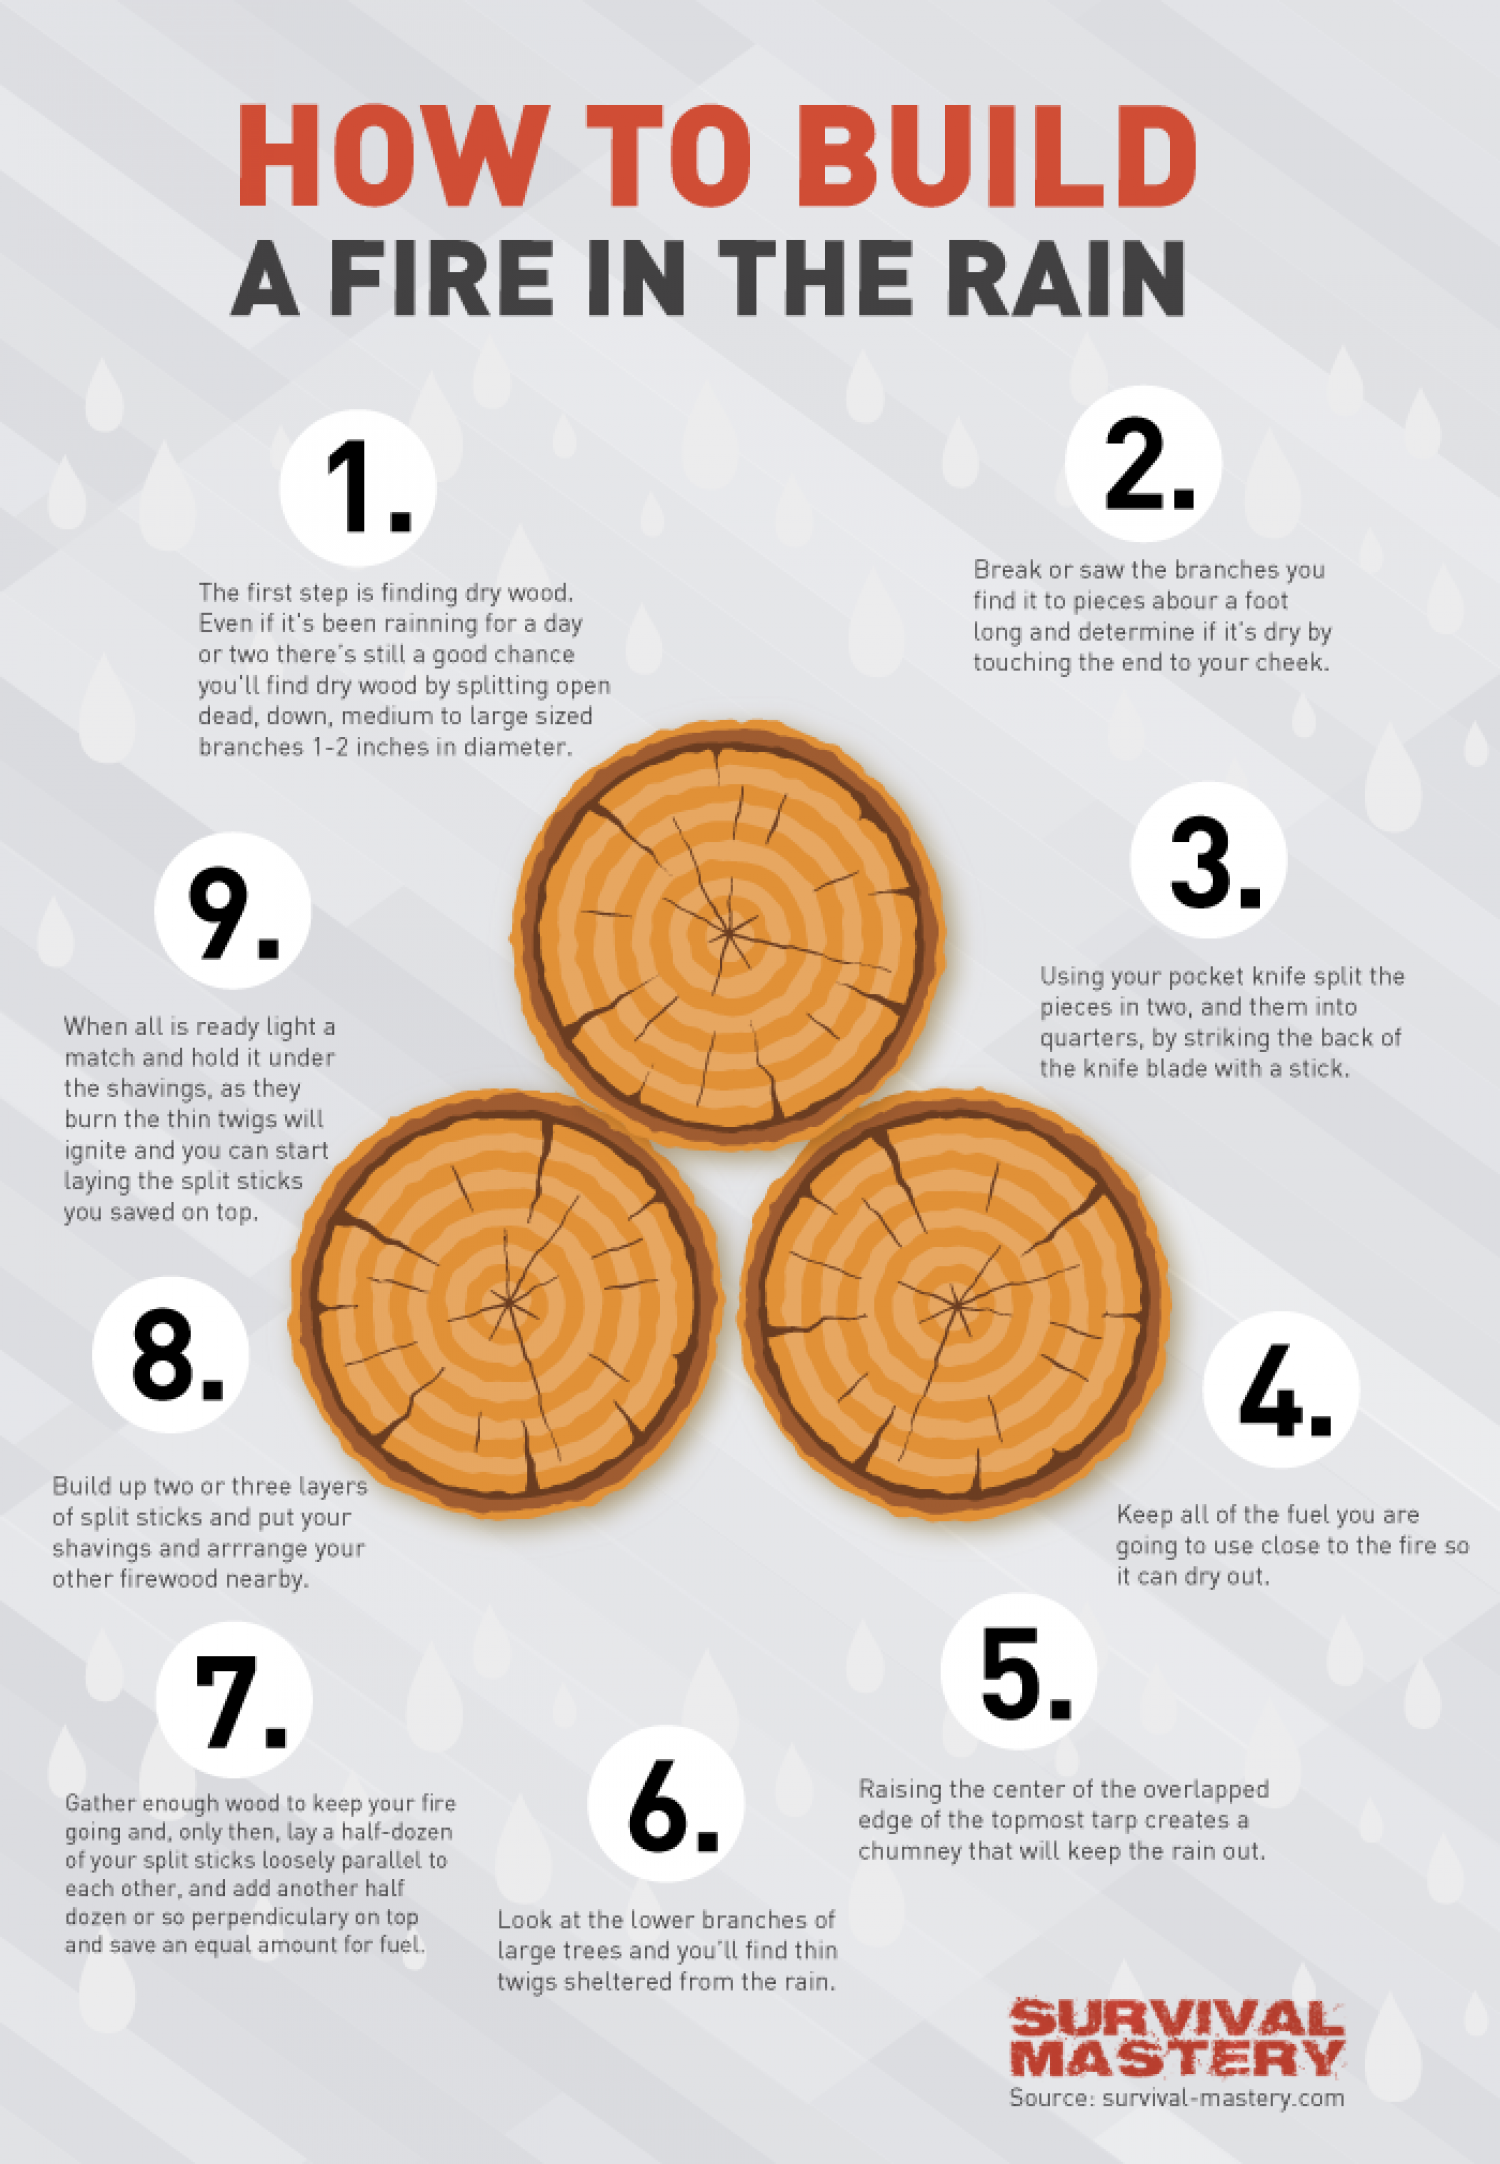 Build Fire In The Rain Infographic Infographic